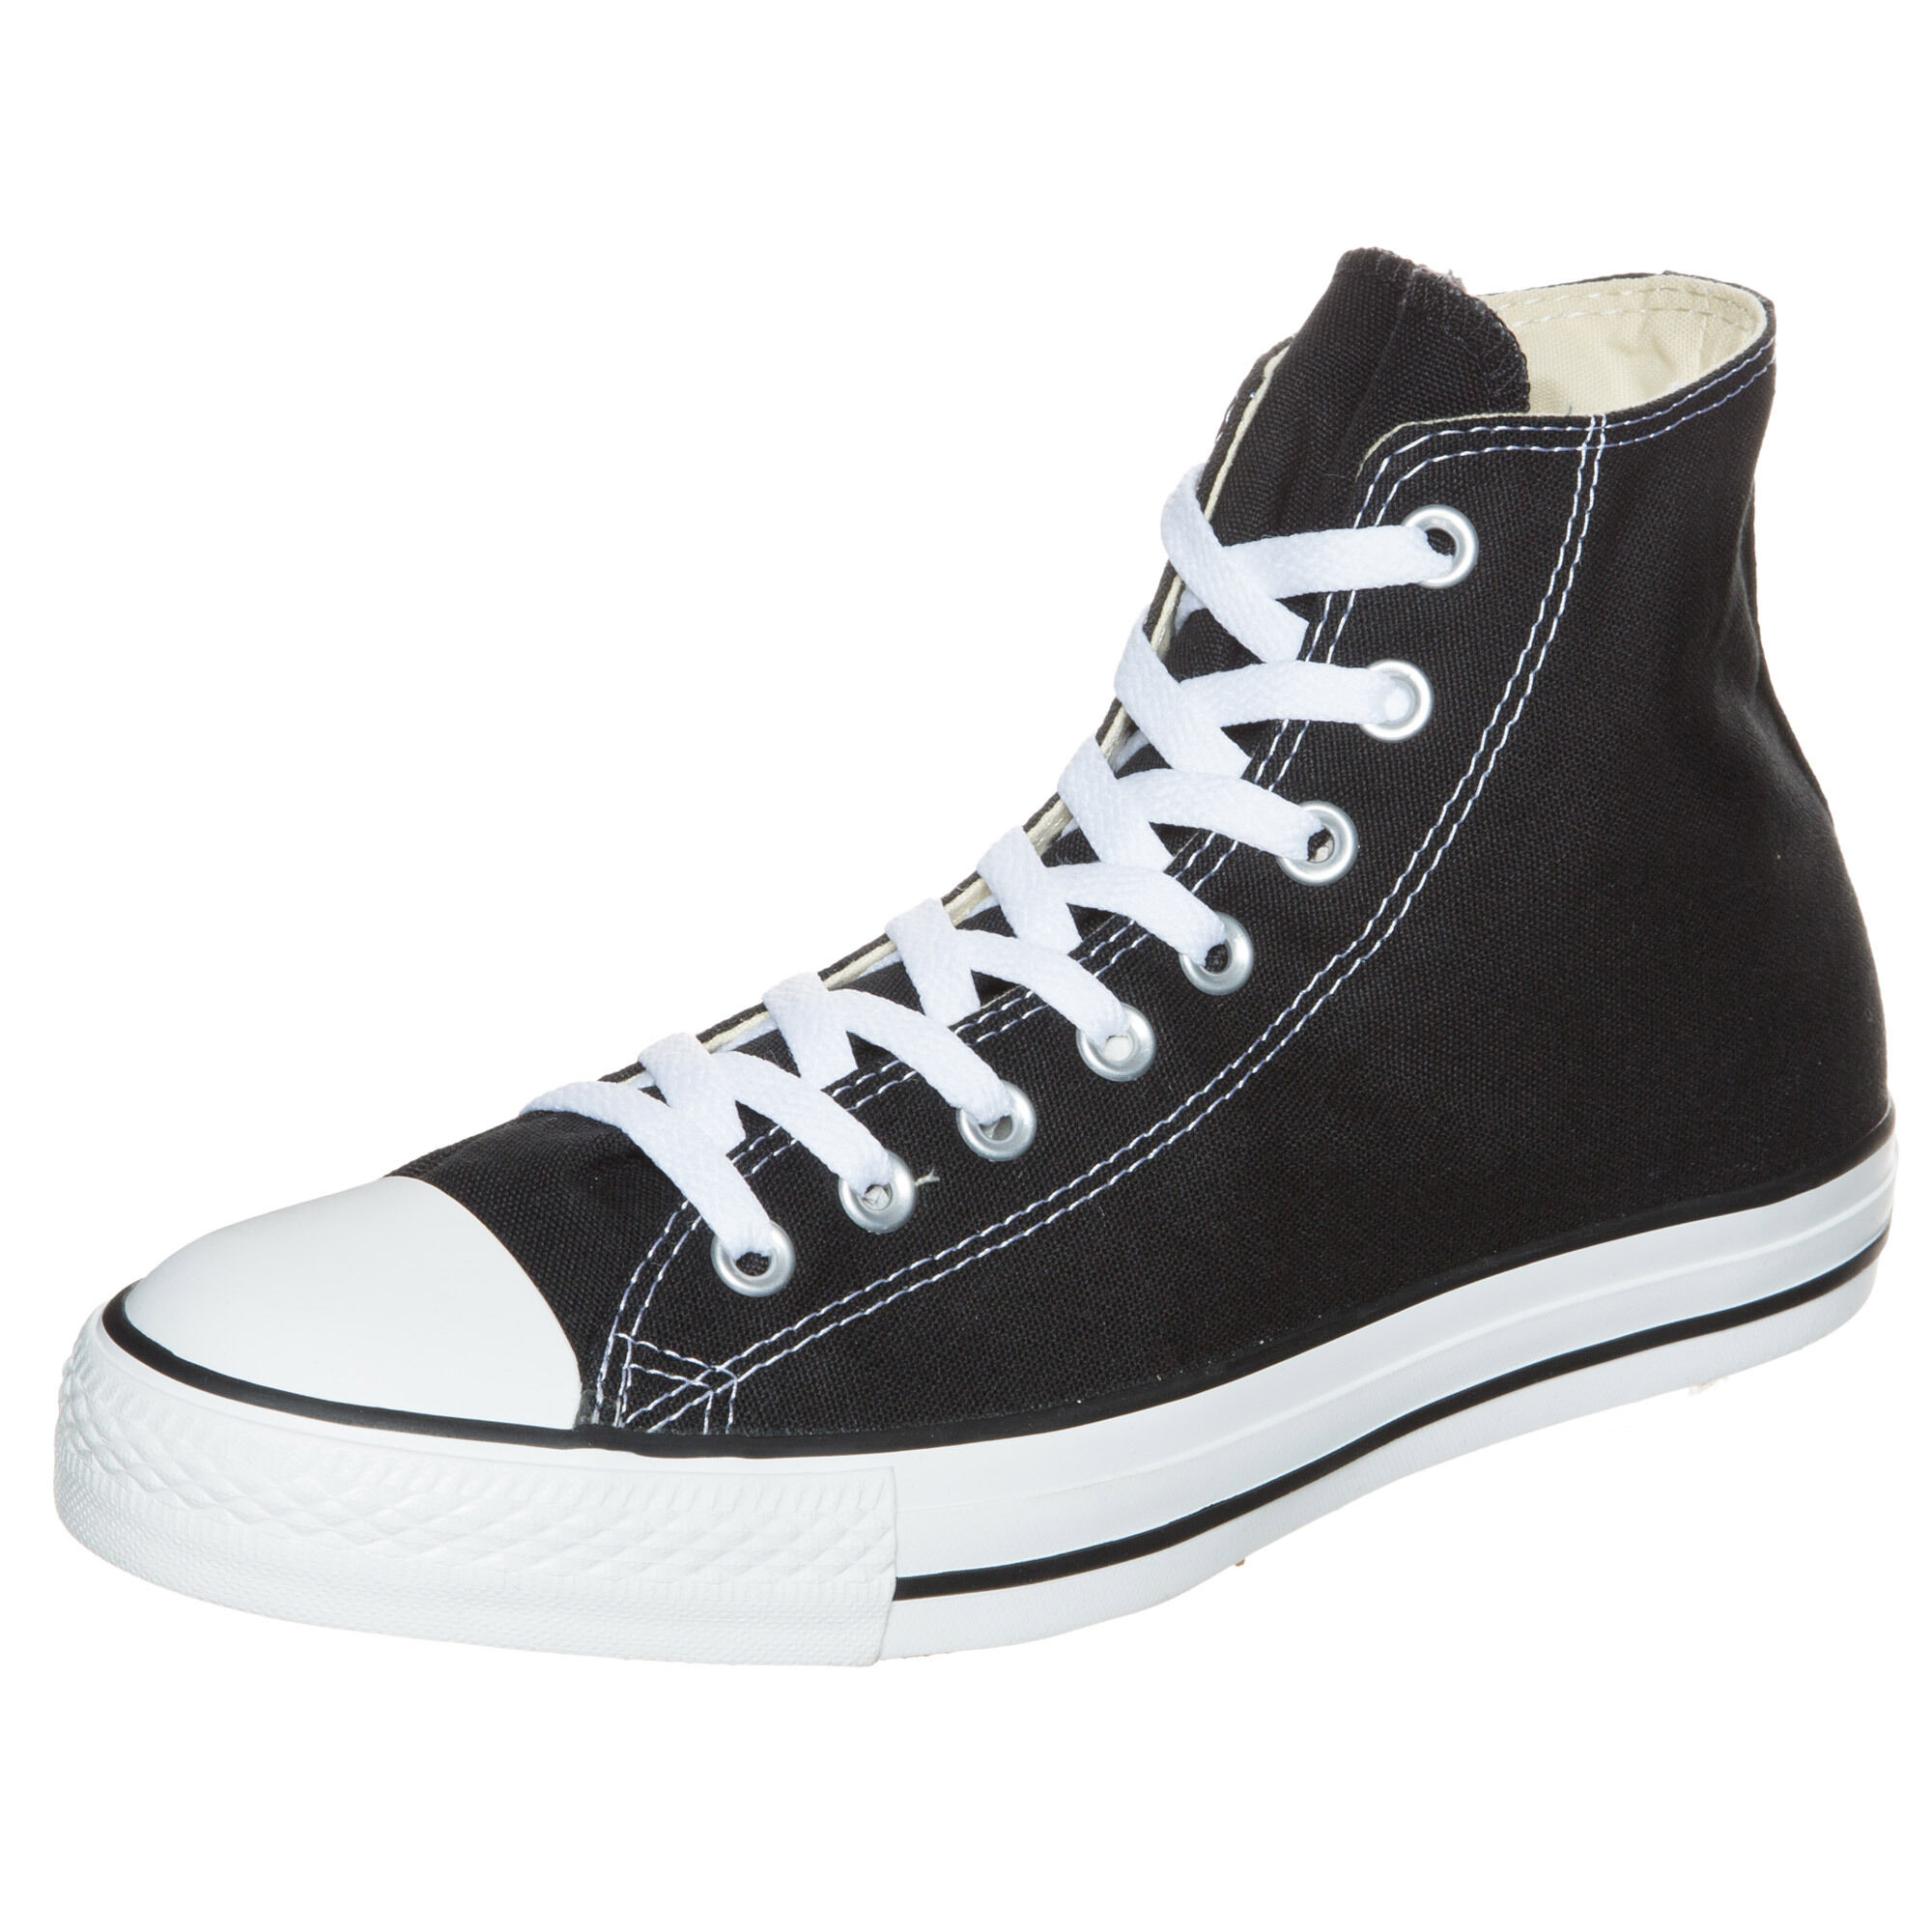 621e41c2eb020 ... coupon for chuck taylor all star high sneaker schwarz zoom bei  outfitter online. converse f9318